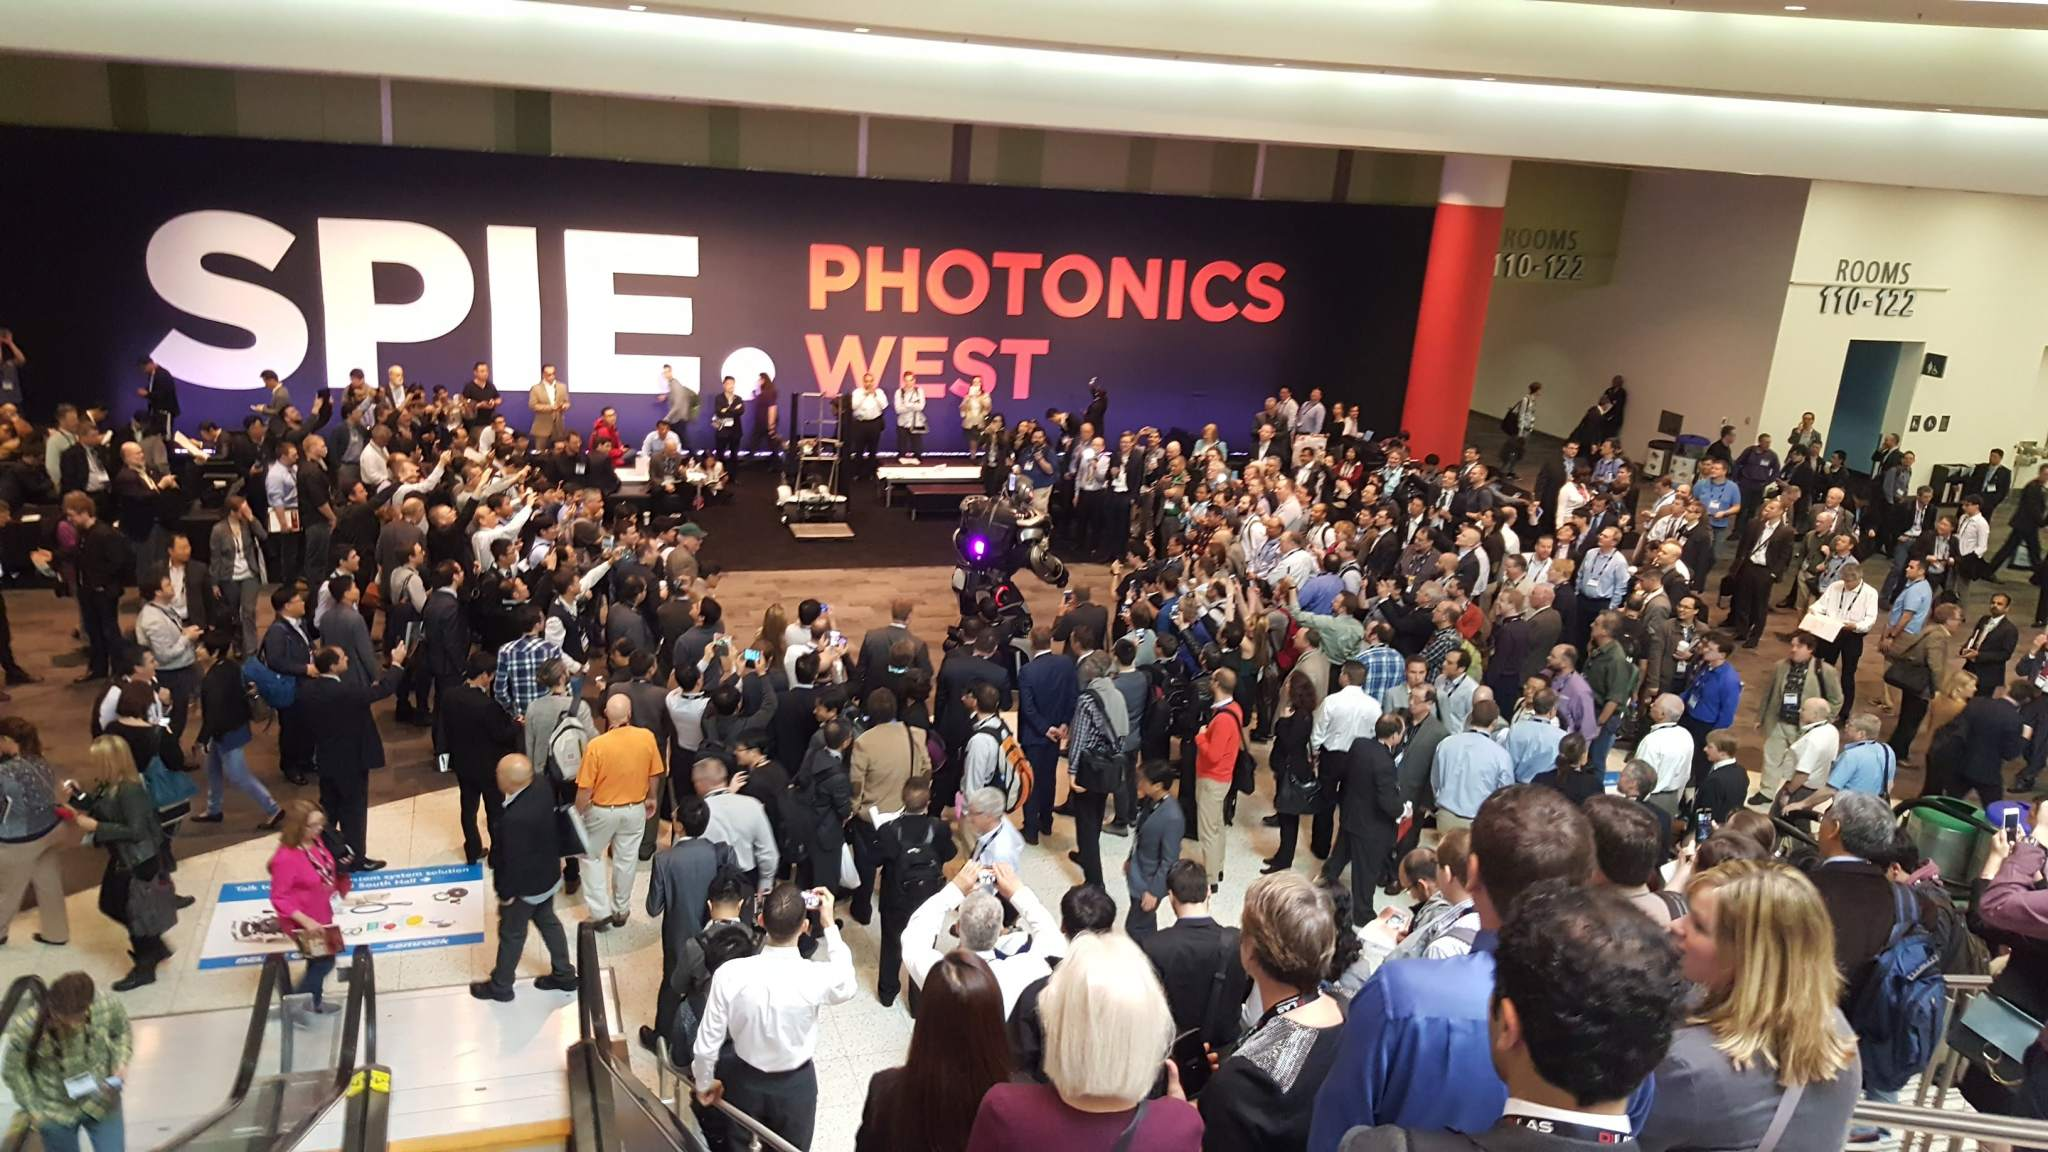 An image from Photonics West 2016. Photo via SPIE.